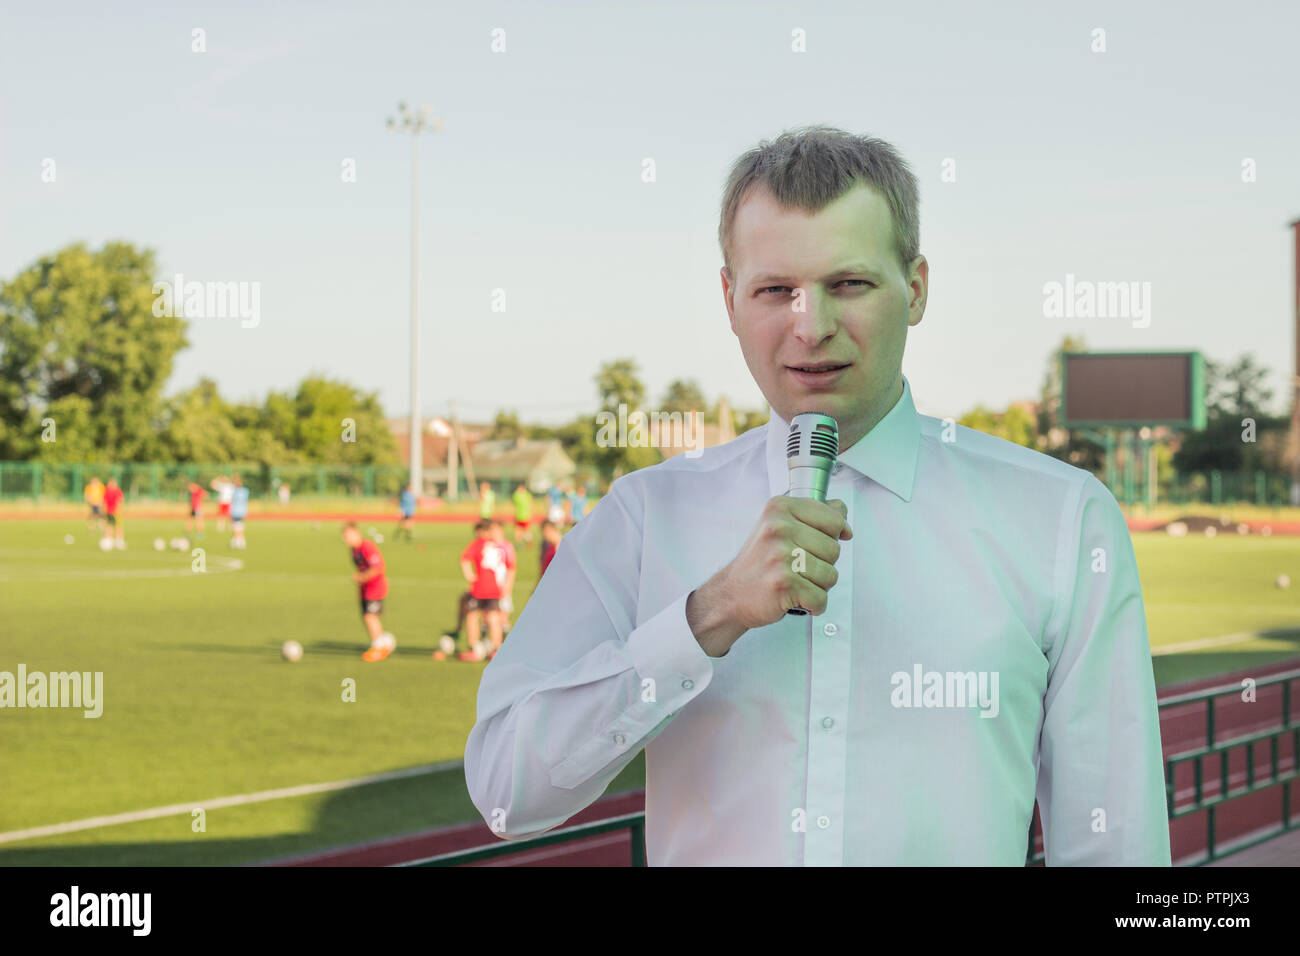 A male commentator in a white shirt with a microphone comments on football in the background of a football match - Stock Image